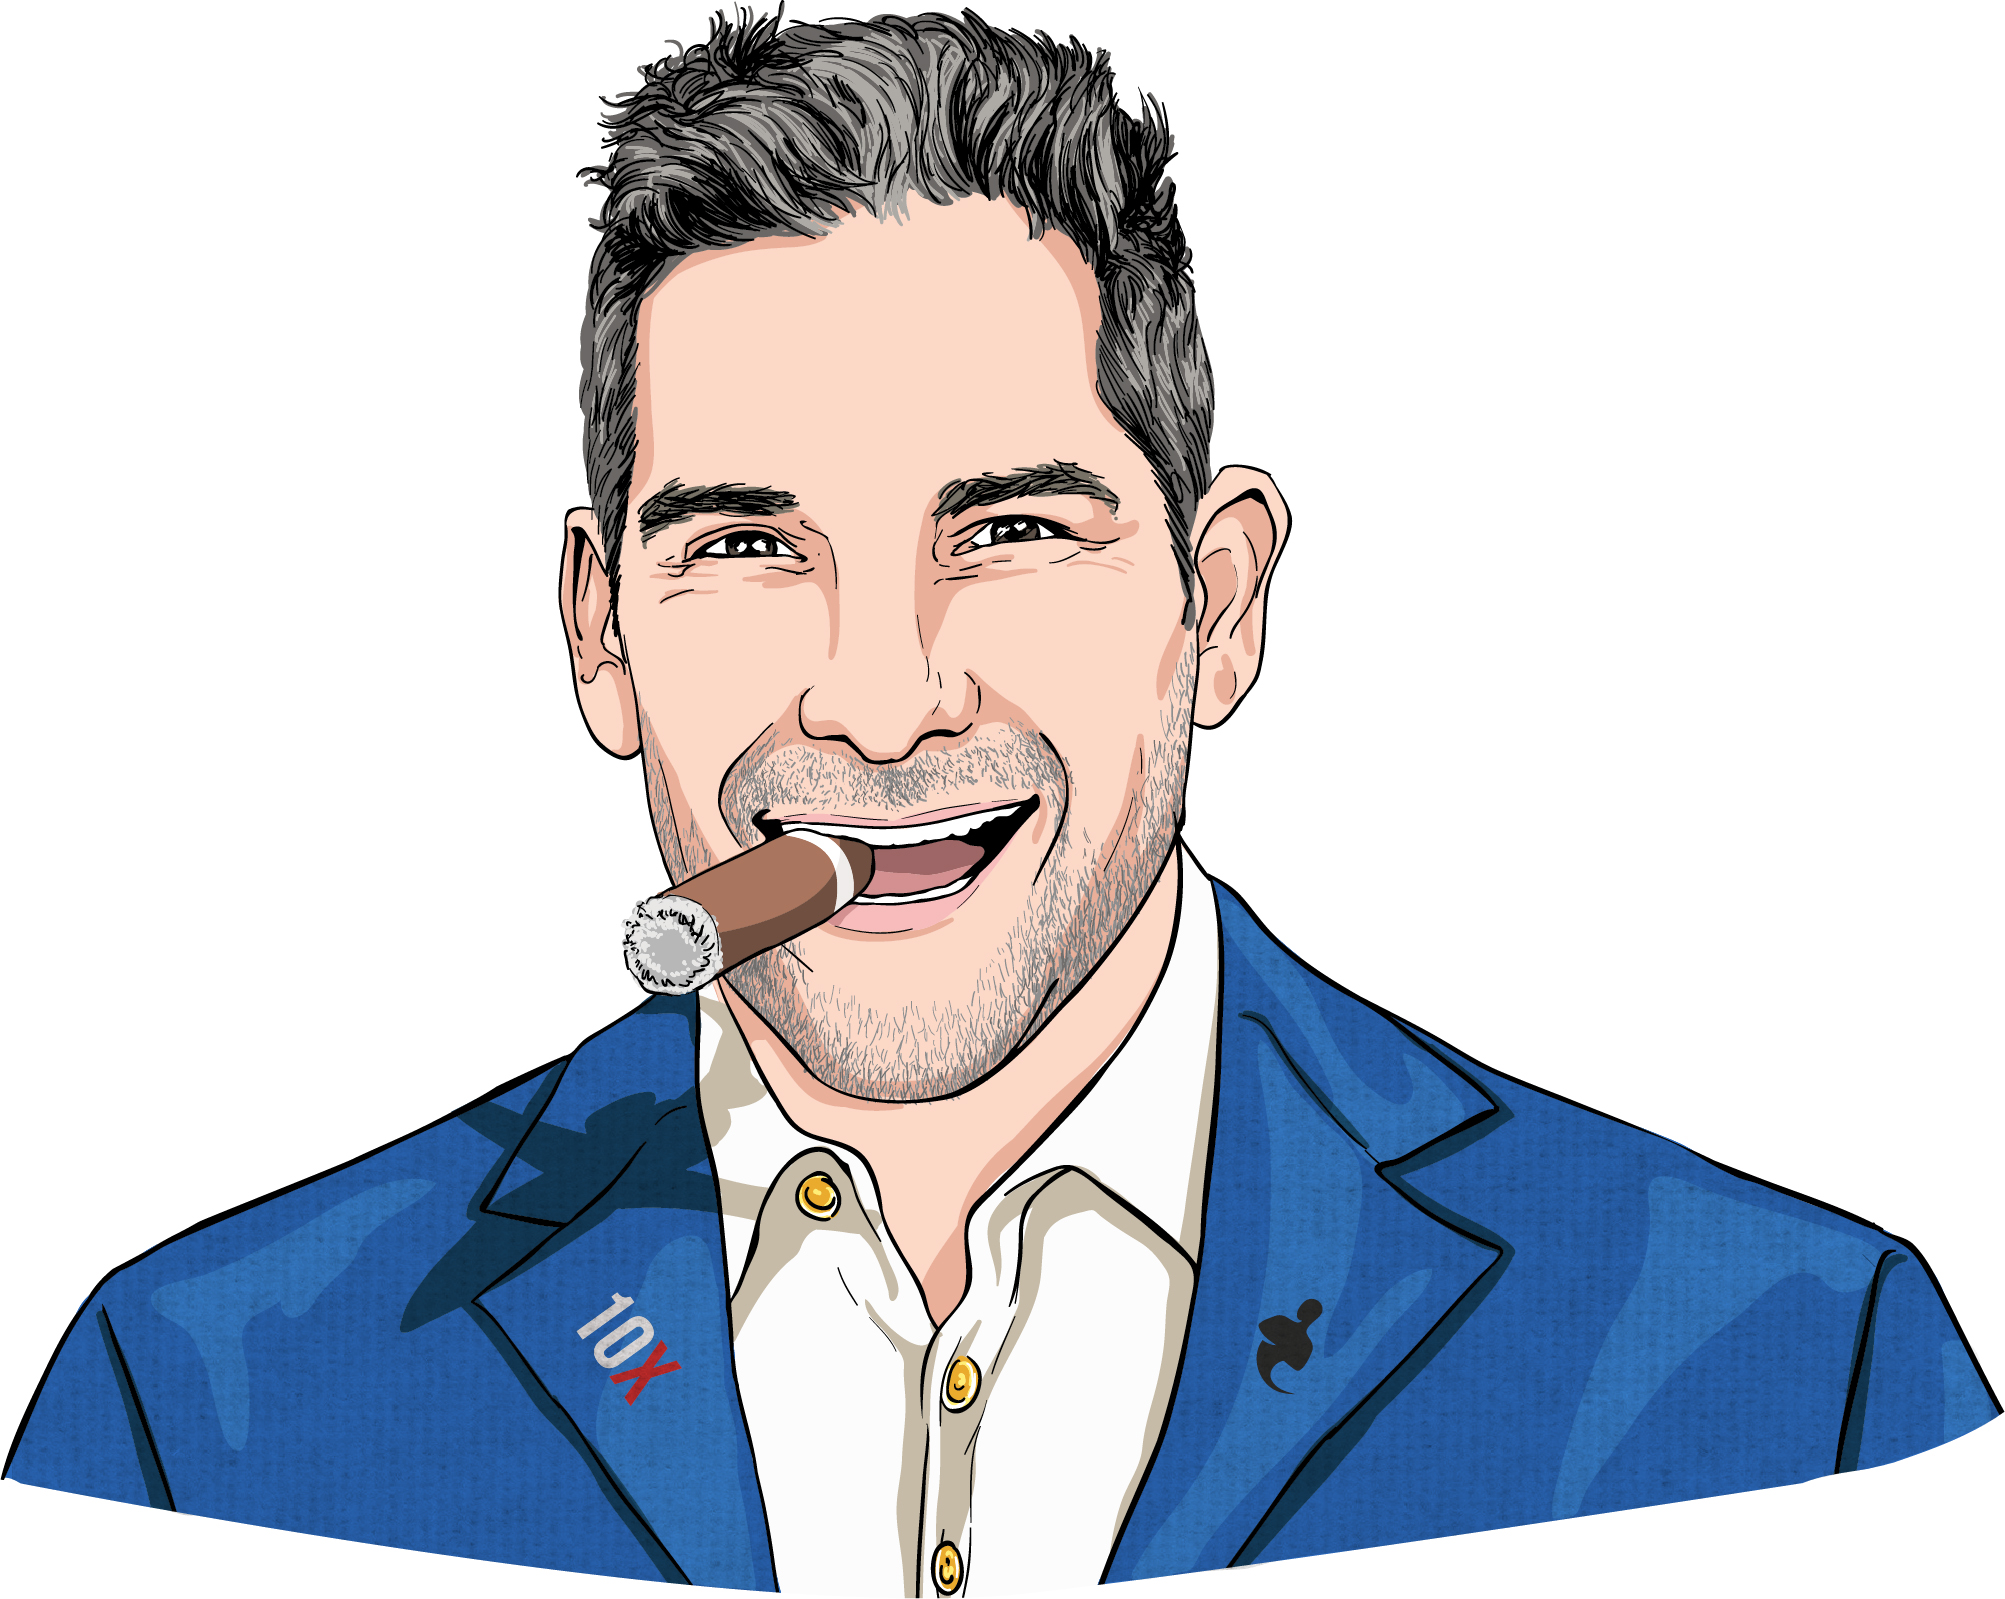 grant-cardone-with-cigar-drawing